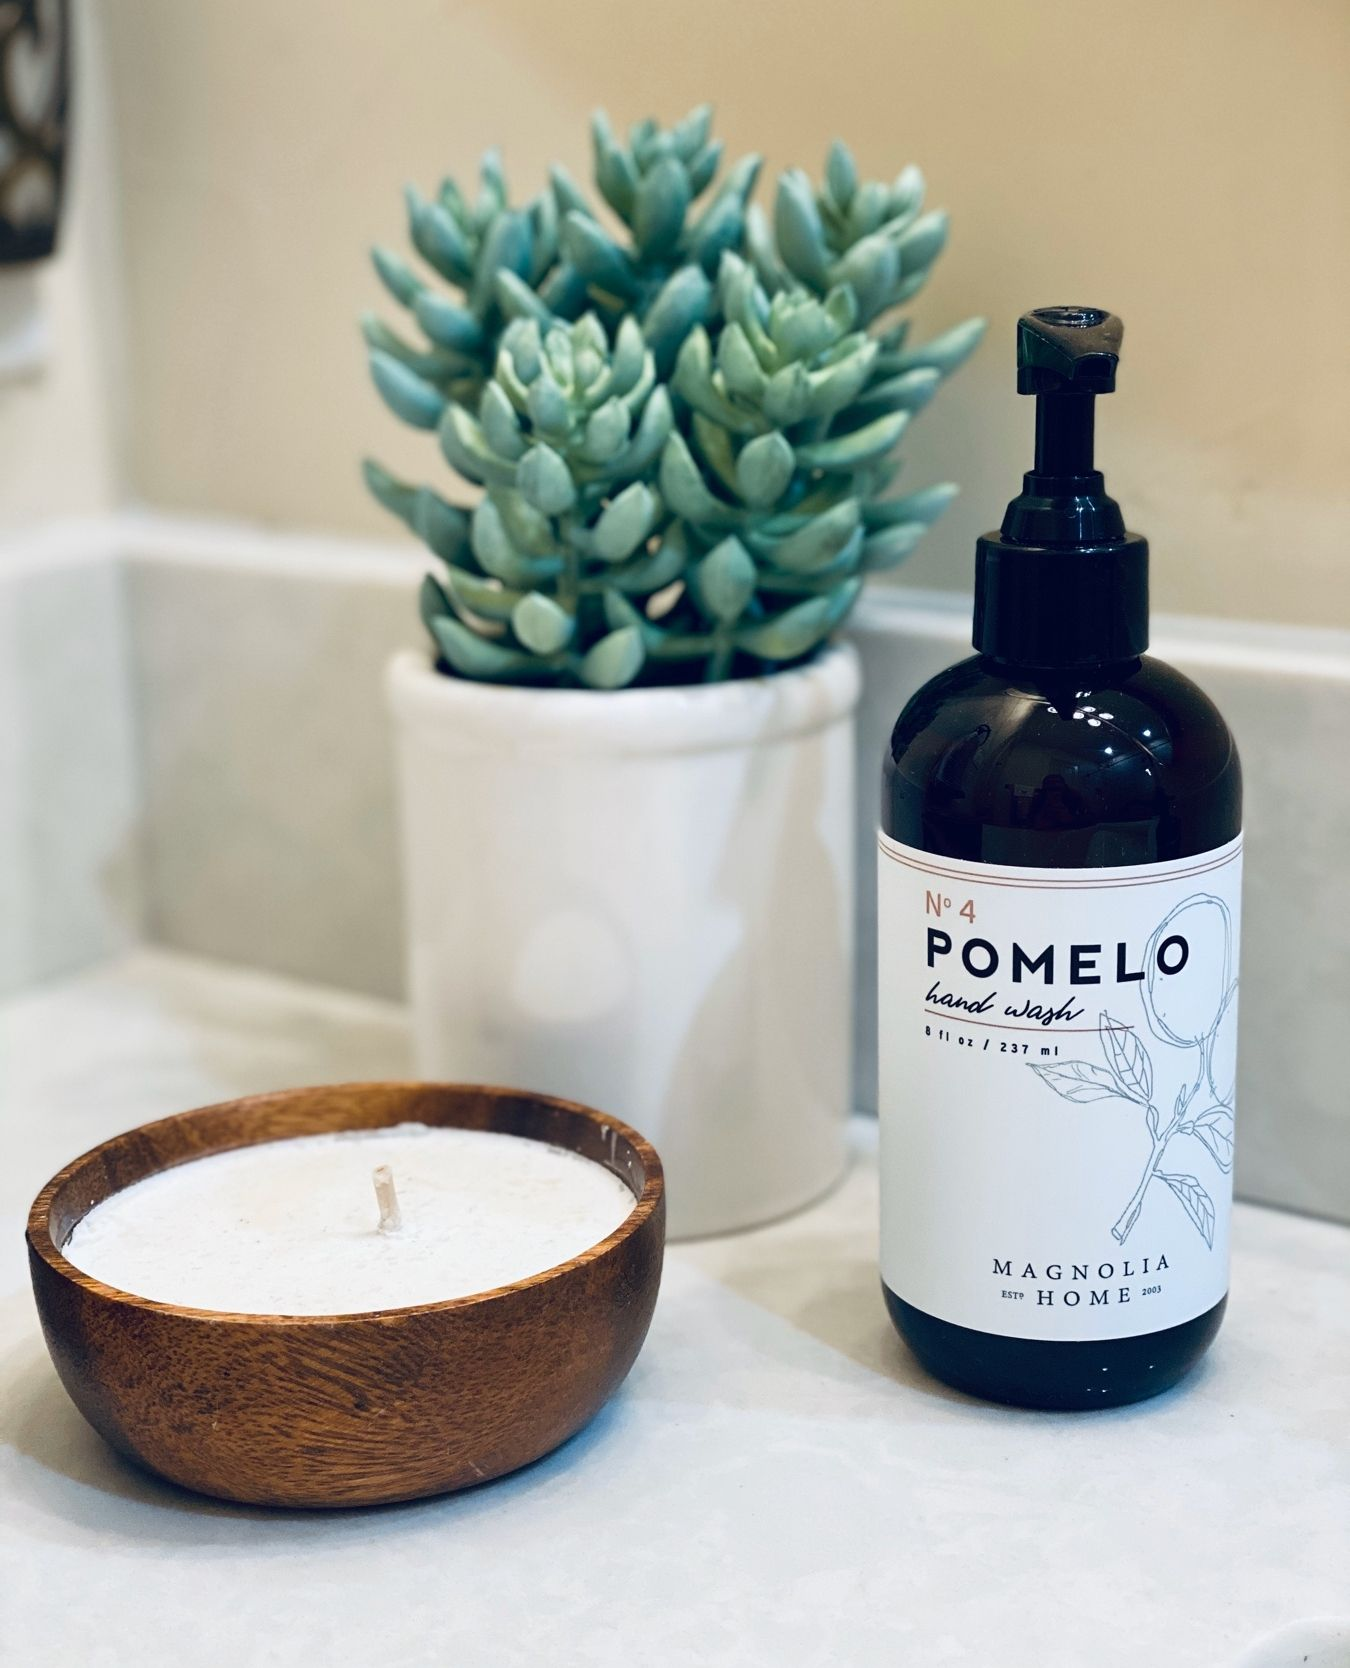 We love us some Chip and Jo in Texas. Their @target line is full of great home decor and even hand soap. We love the Pomelo scent and that the formula doesn't dry out your hands.  . . . #target #targethome #targetfan #targetlover #targetdoesitagain #targetobessed #targetstyle #target #targetforthewin #targetfinds  #targetdollarspot #targetdeals #targetaddict #targetlove #targetbullseye #targethome #hearthandhandattarget #forthehome #homedecor #homedecorating  #decor #home #homestyle #homeinspo